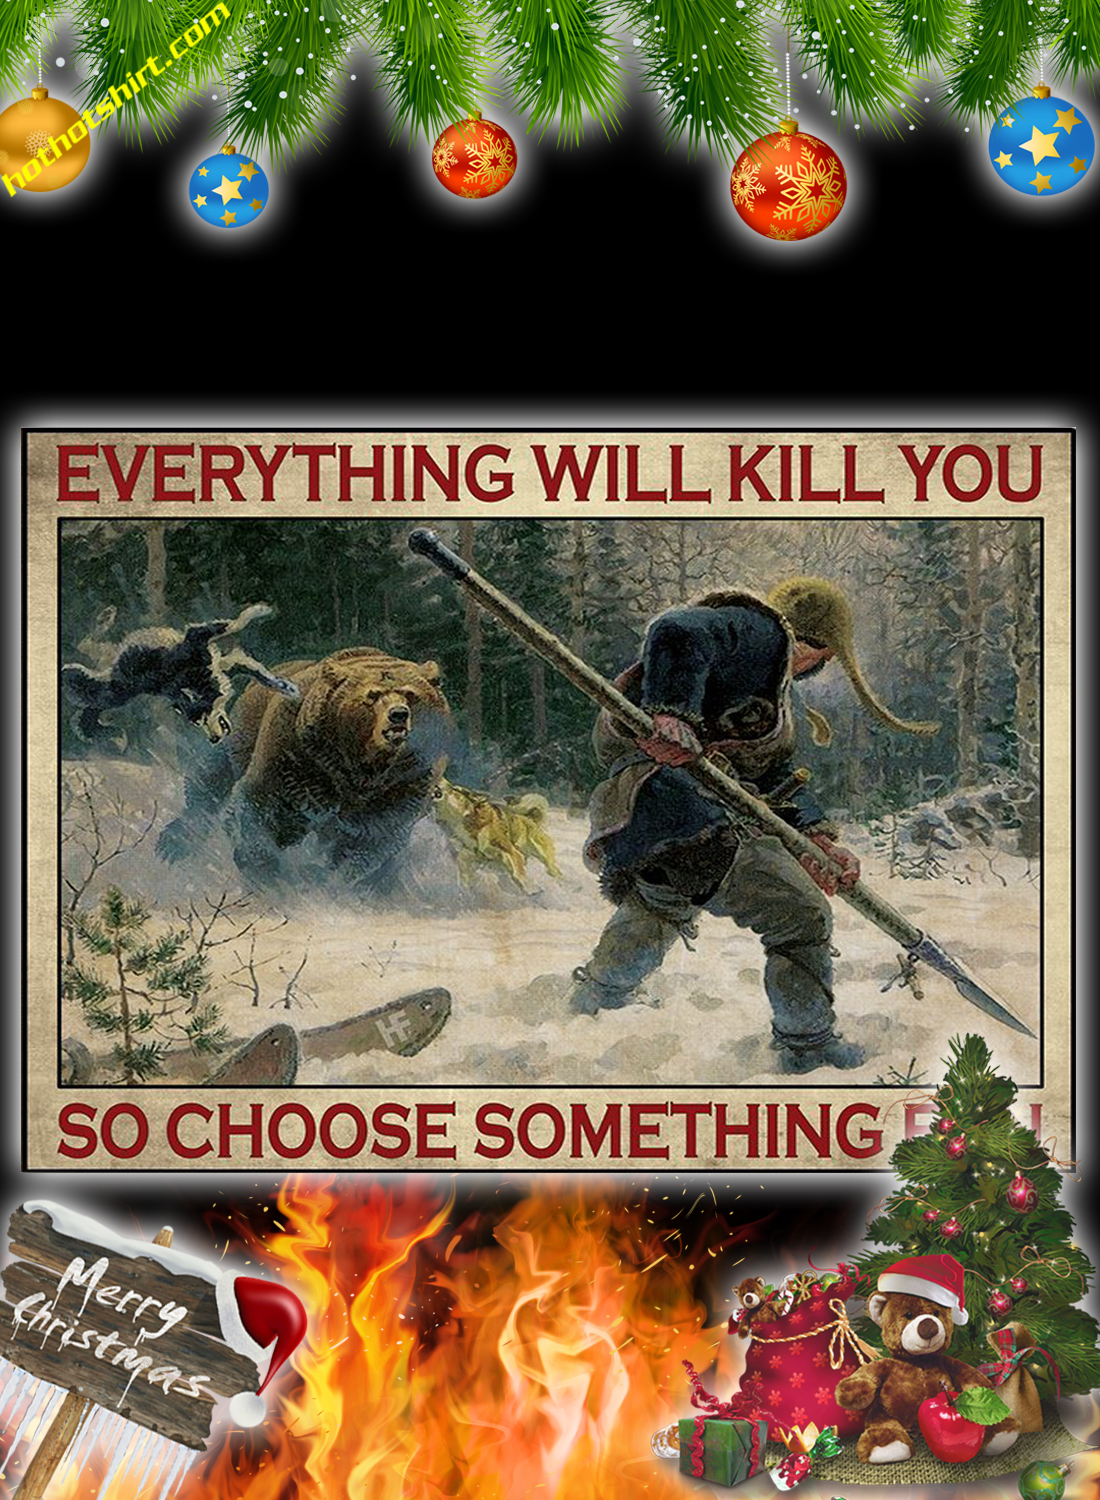 Big-Game Hunting everything will kill you so choose something fun poster and canvas prints